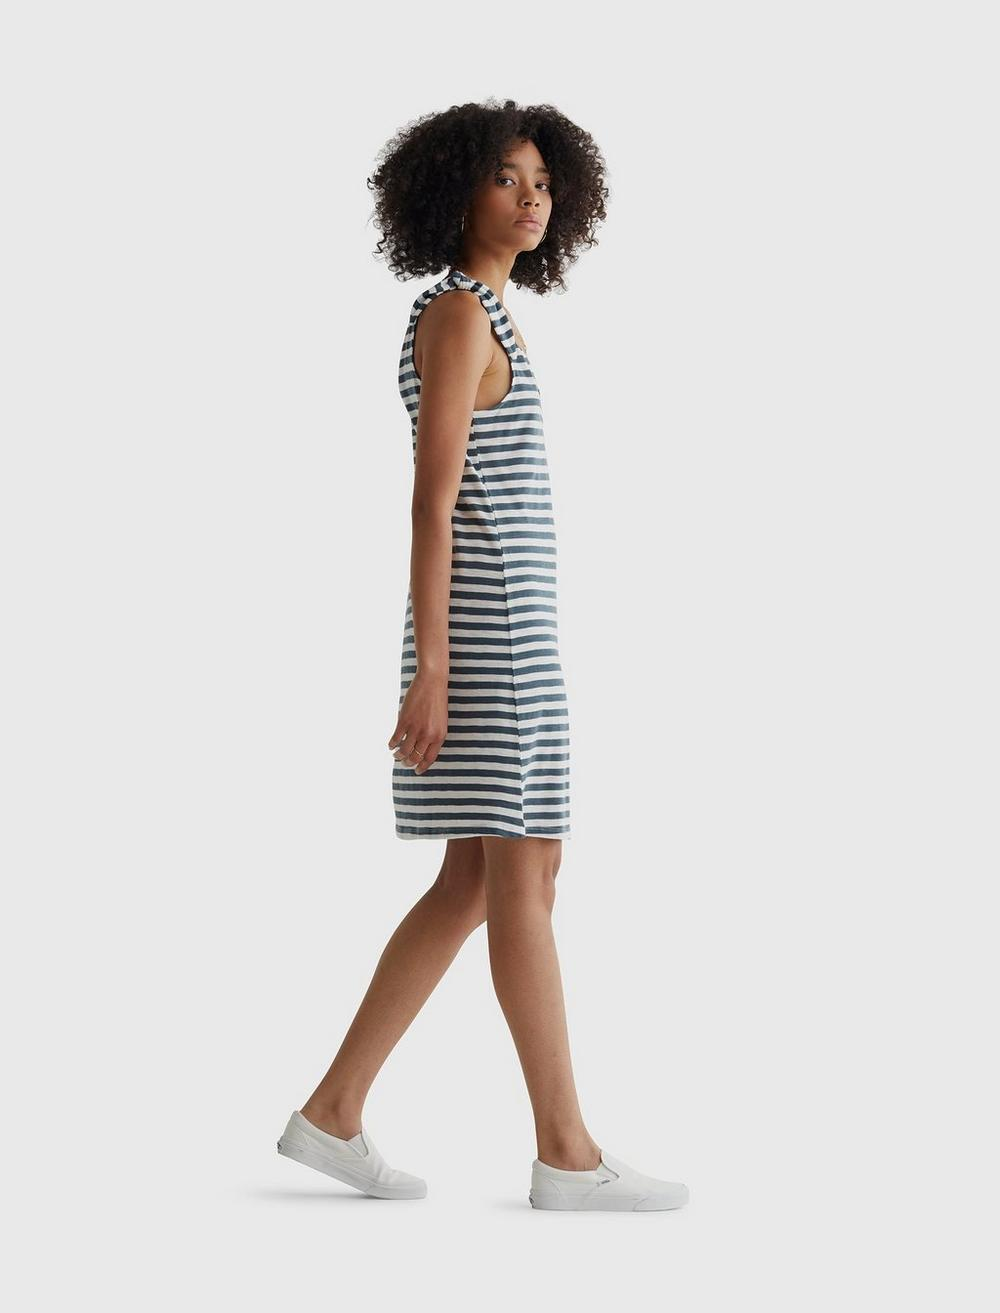 KNOTTED TANK DRESS, image 4